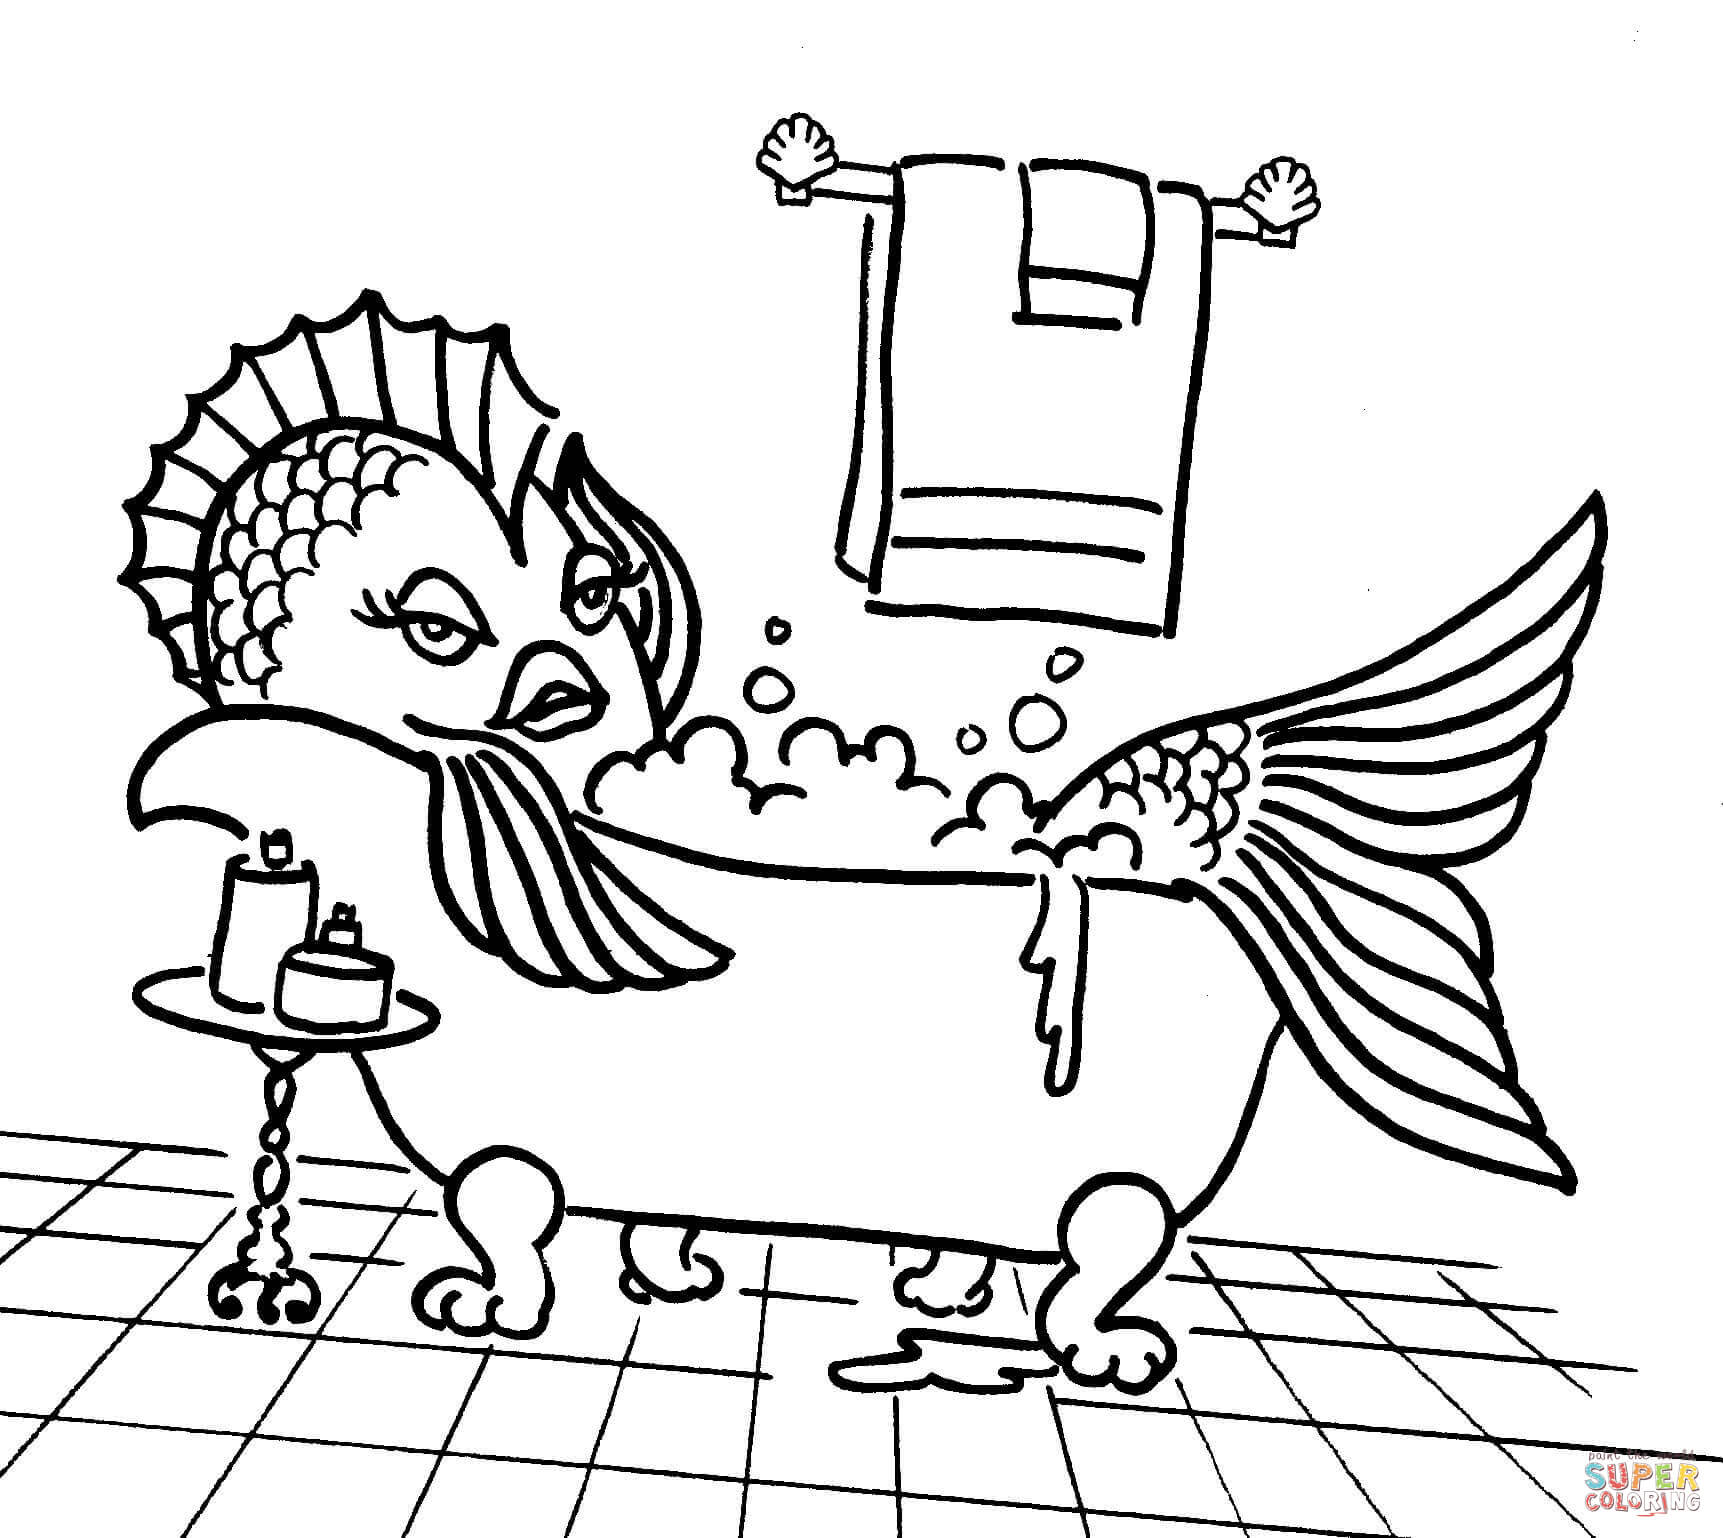 Cartoon Drawing Of Fish At Free For Personal Use Fuse Box 1723x1538 In The Tub Coloring Page Printable Pages